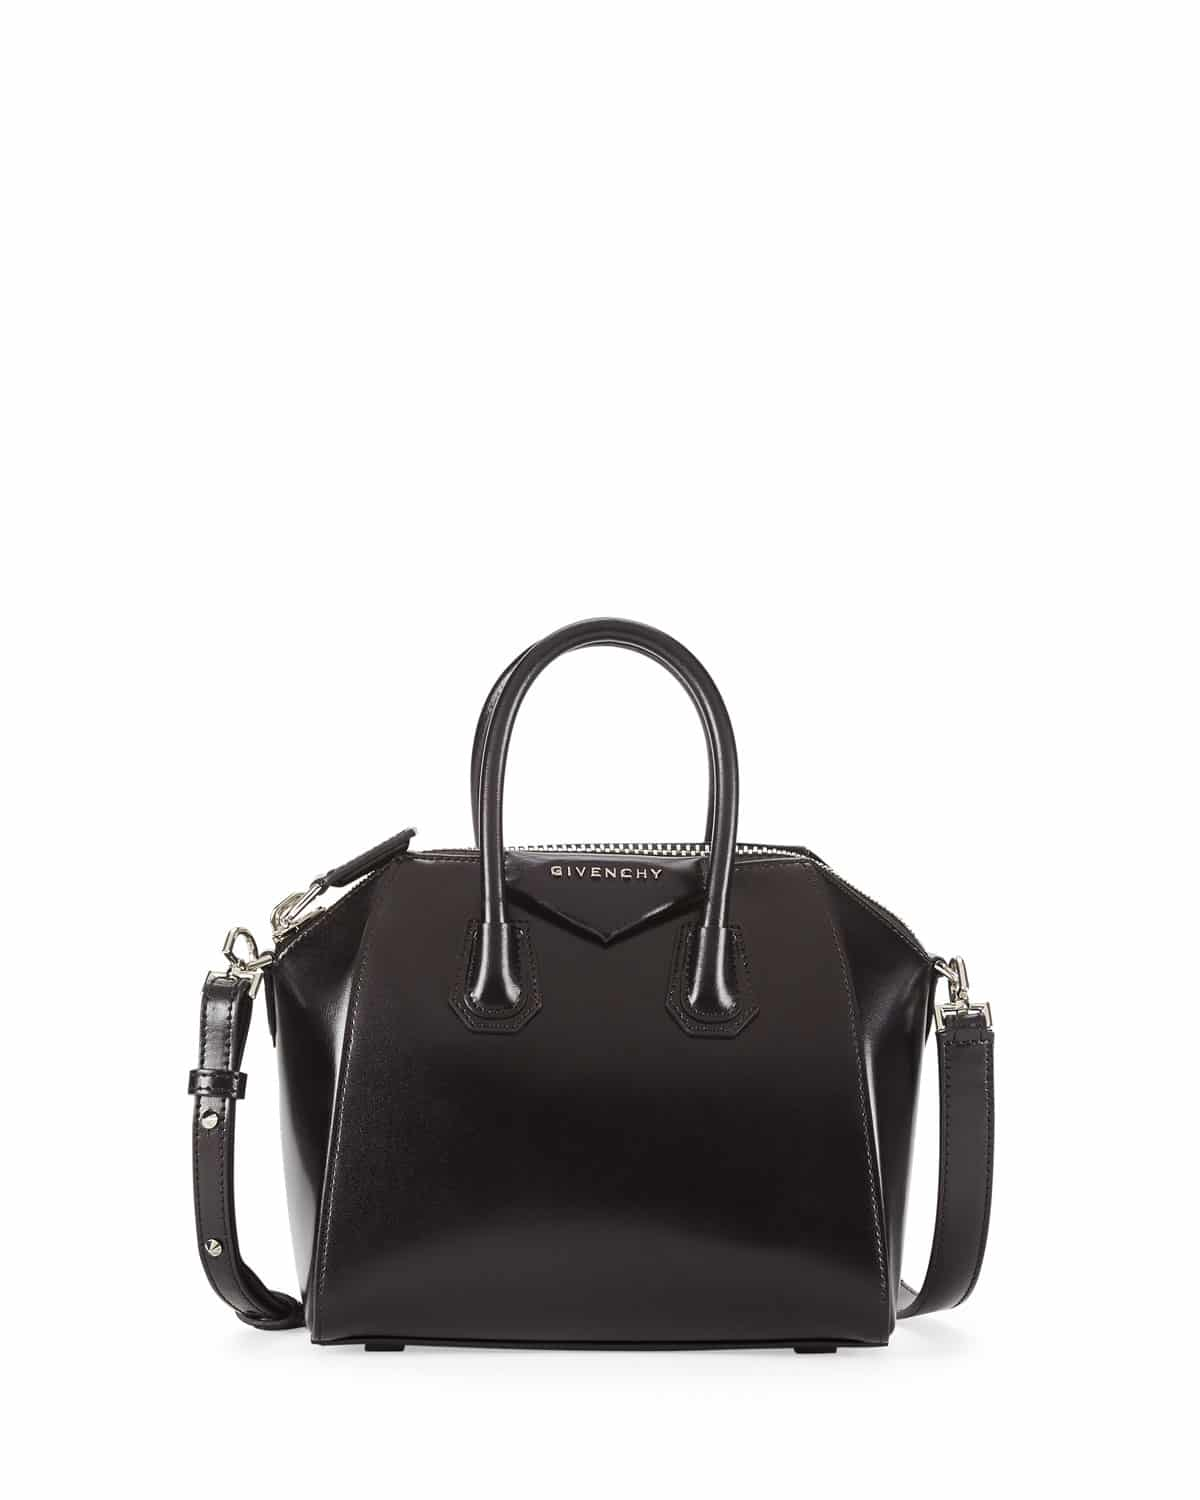 3421e62f07 More Givenchy Pre-fall 2014 Bags including More Mini Antigona Styles ...